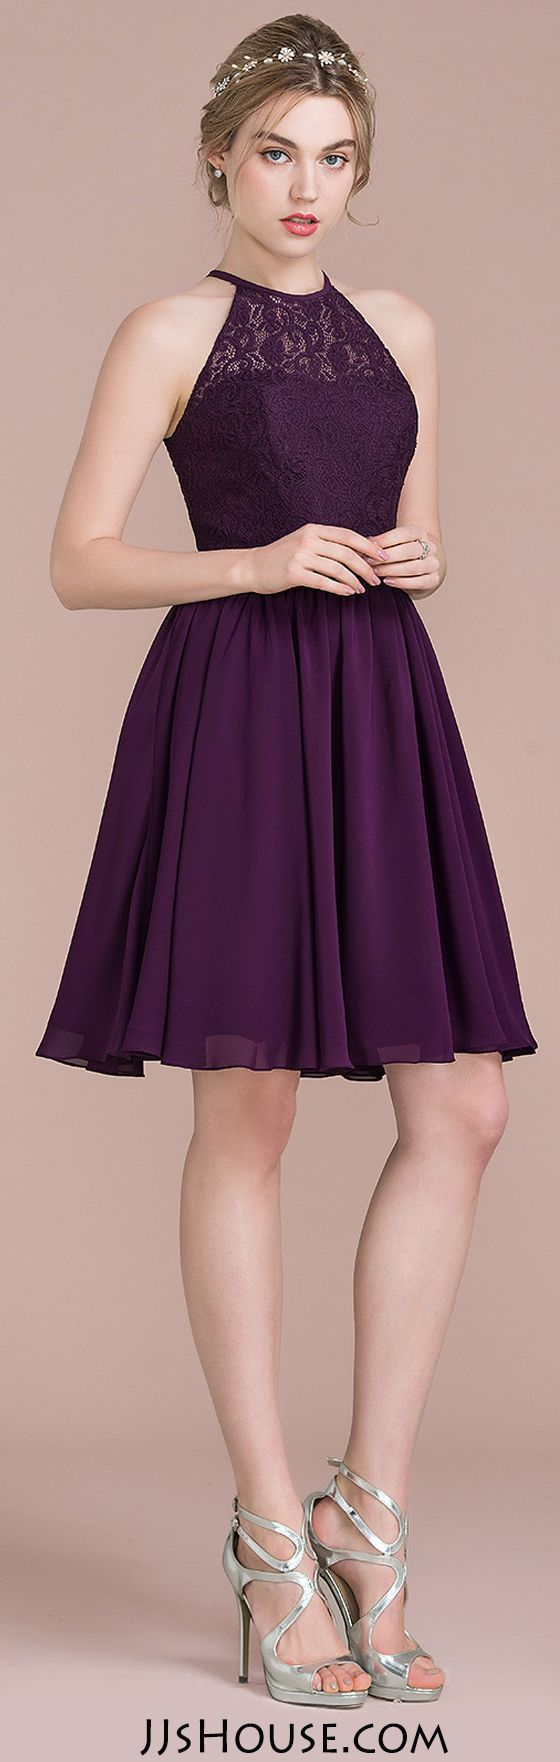 Short bridesmaid dresses for spring&summer wedding. 48 Colors Available Now! And all dresses cane be made to measure, no worry about size~~ #JJsHouse #lacebridesmaids